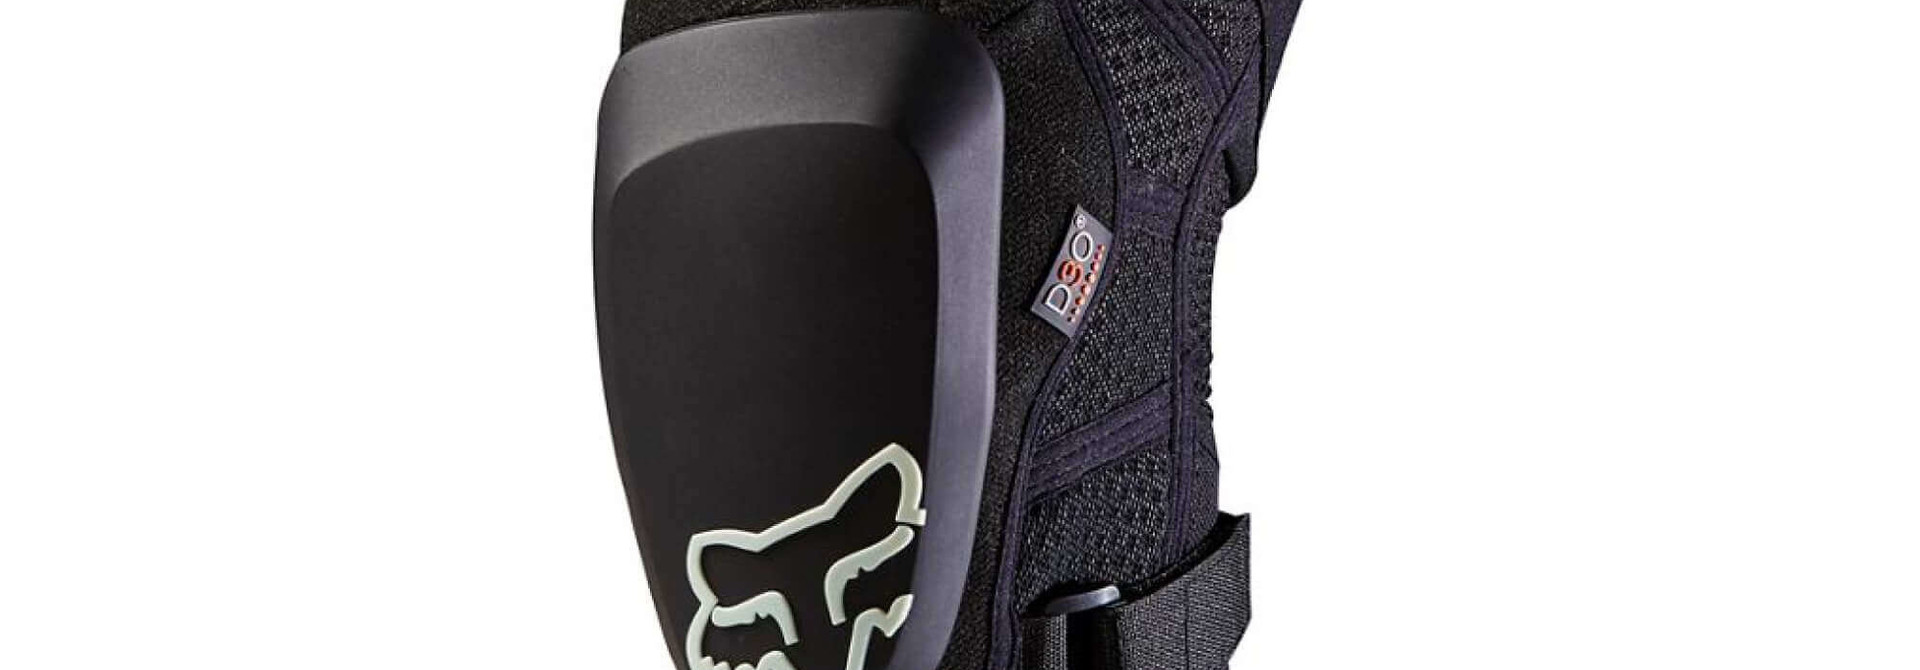 Launch Pro D3O Knee Guard Black